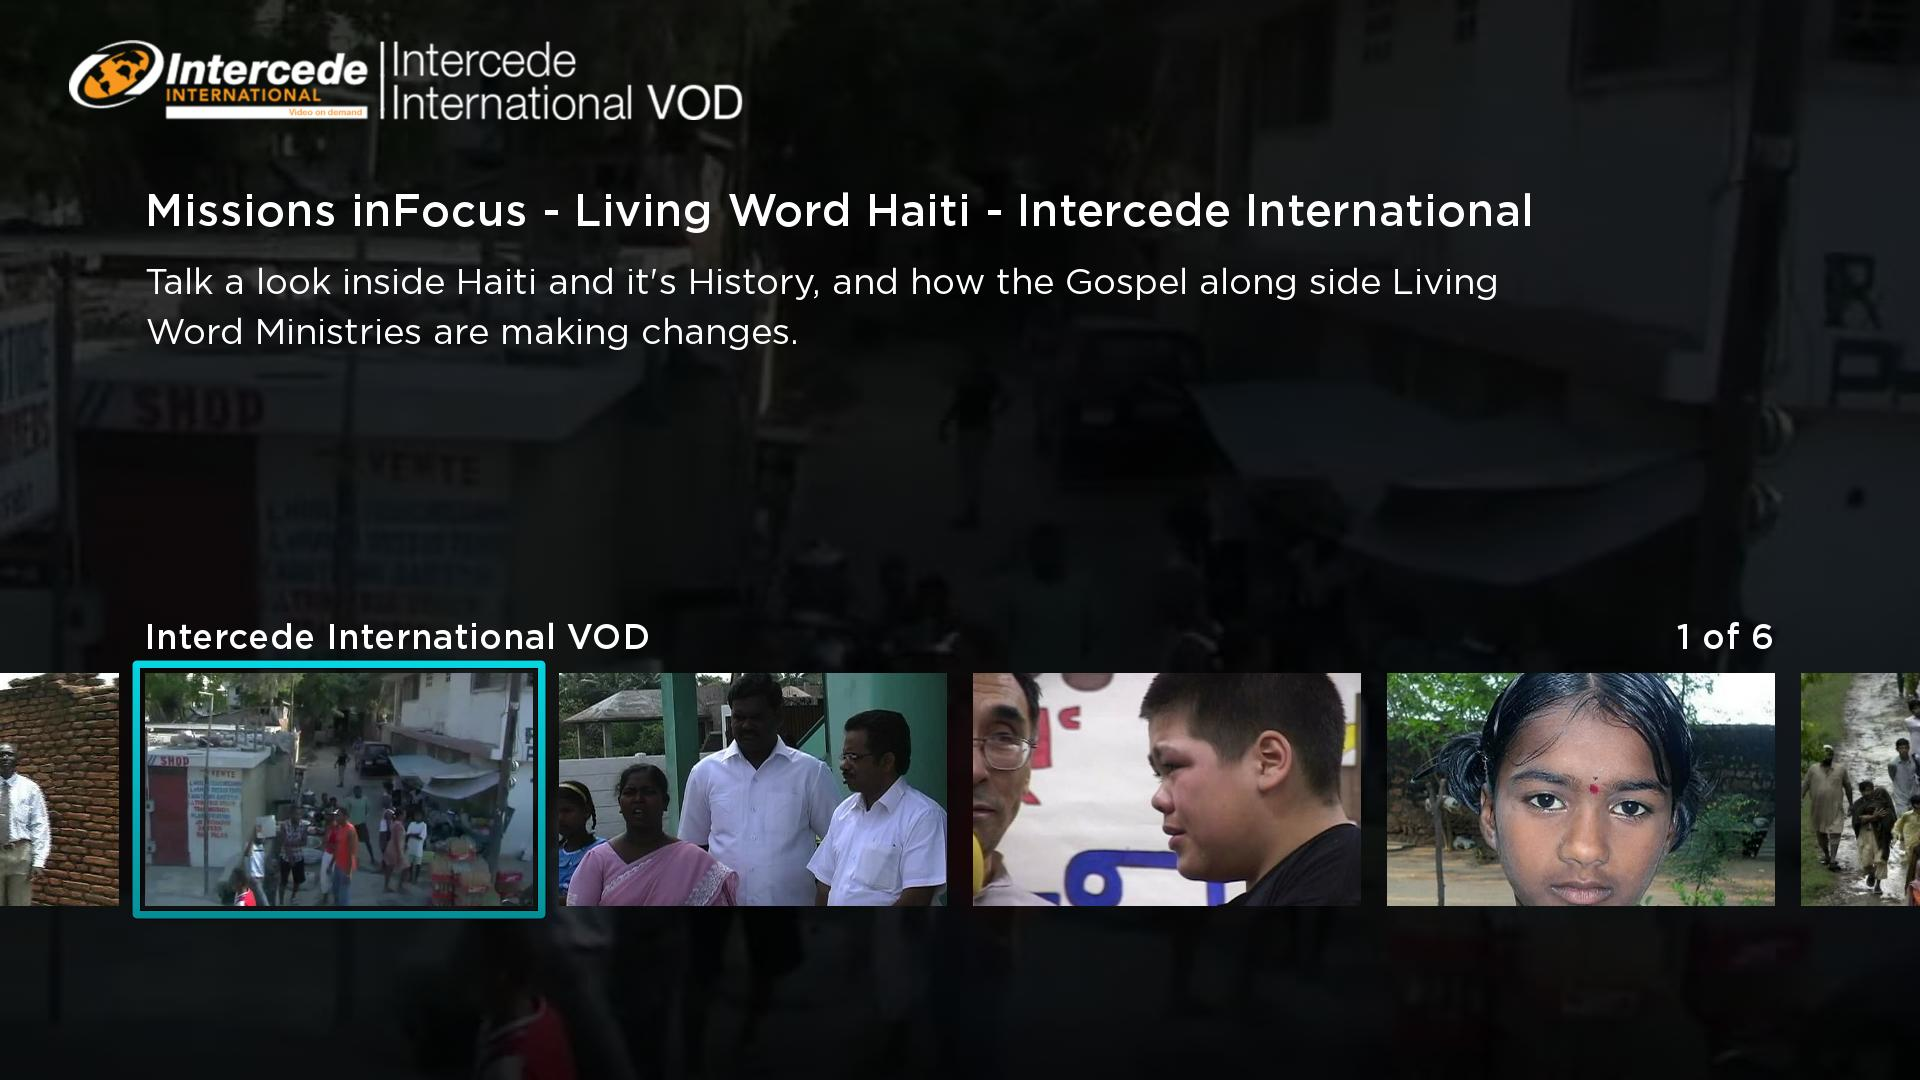 Intercede International Screenshot 002